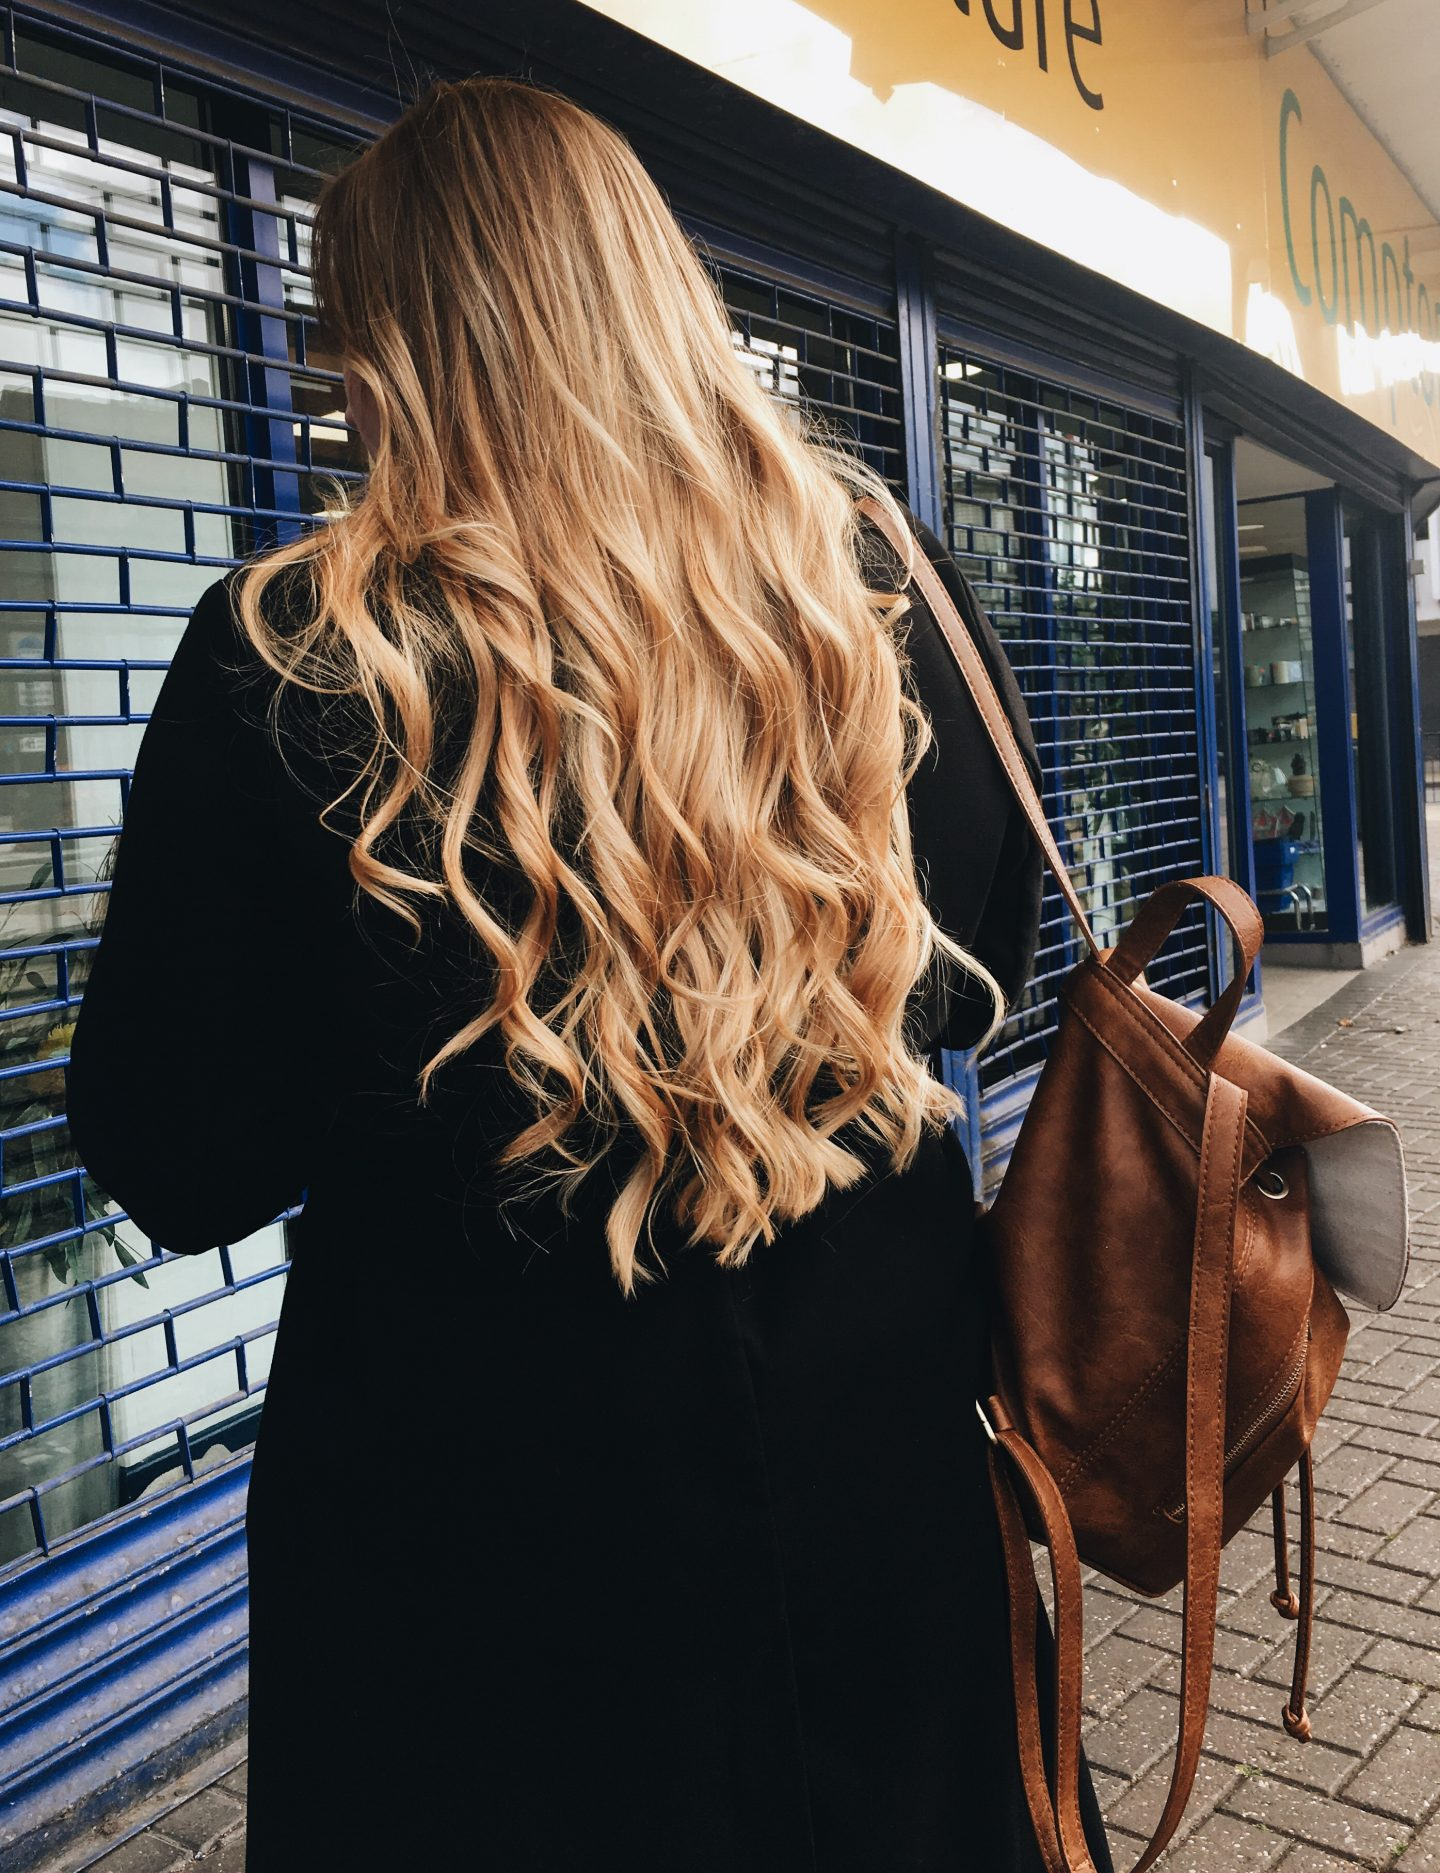 The Best Products To Get Healthy Hair